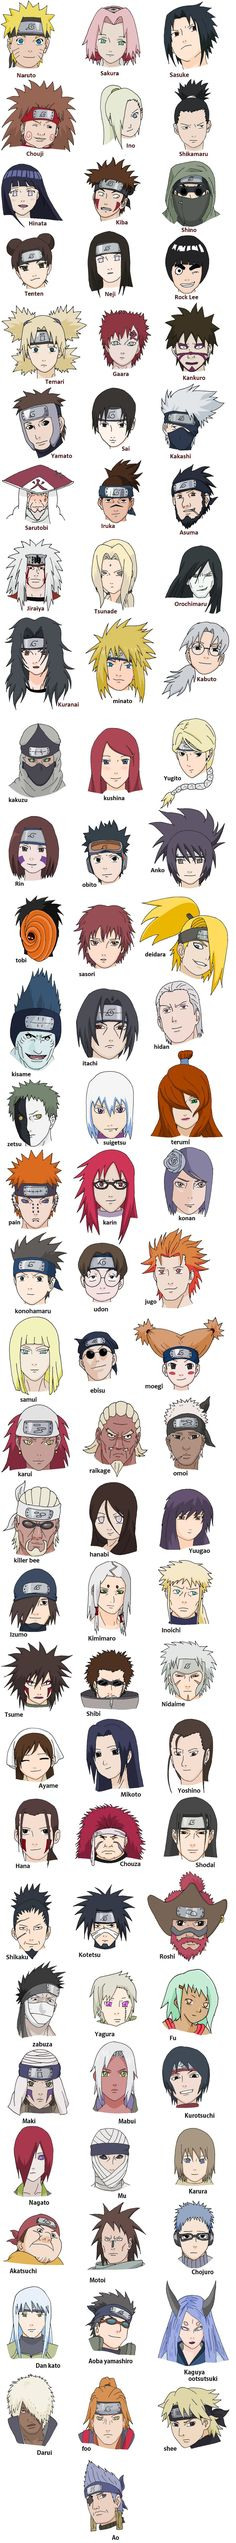 Naruto Characters and Names by MissSonia1 on DeviantArt